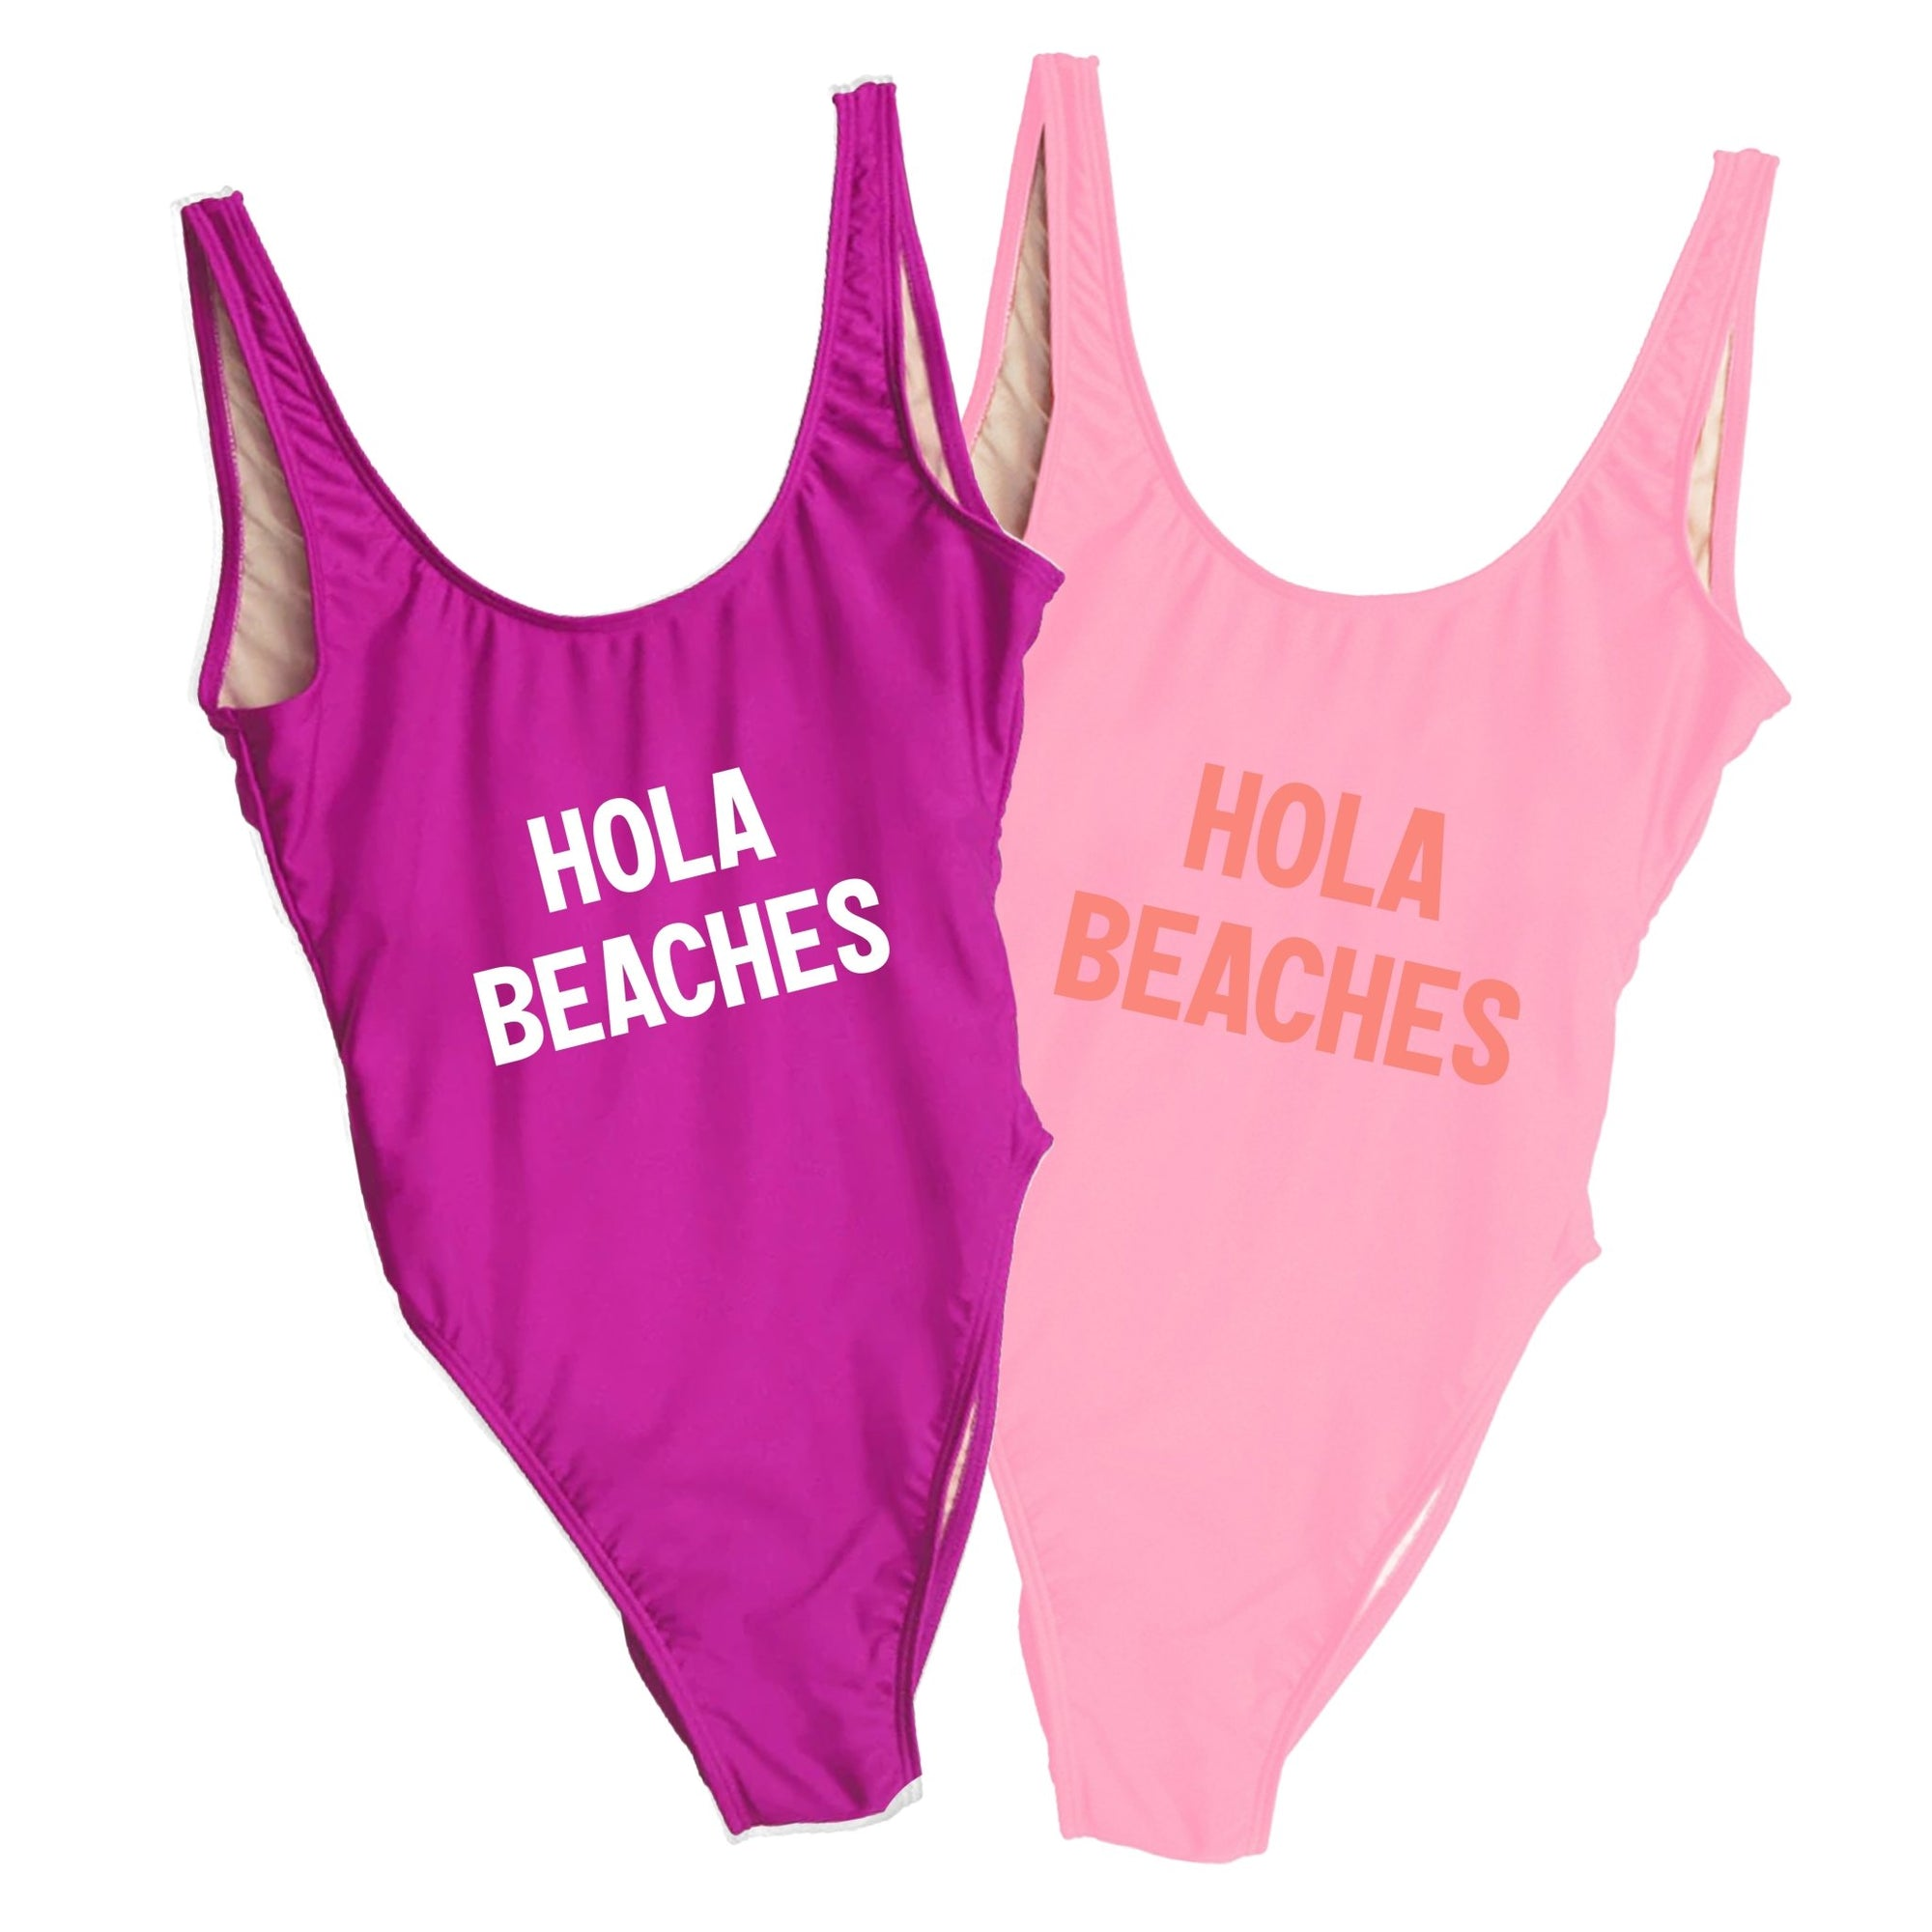 Hola Beaches Swimsuit